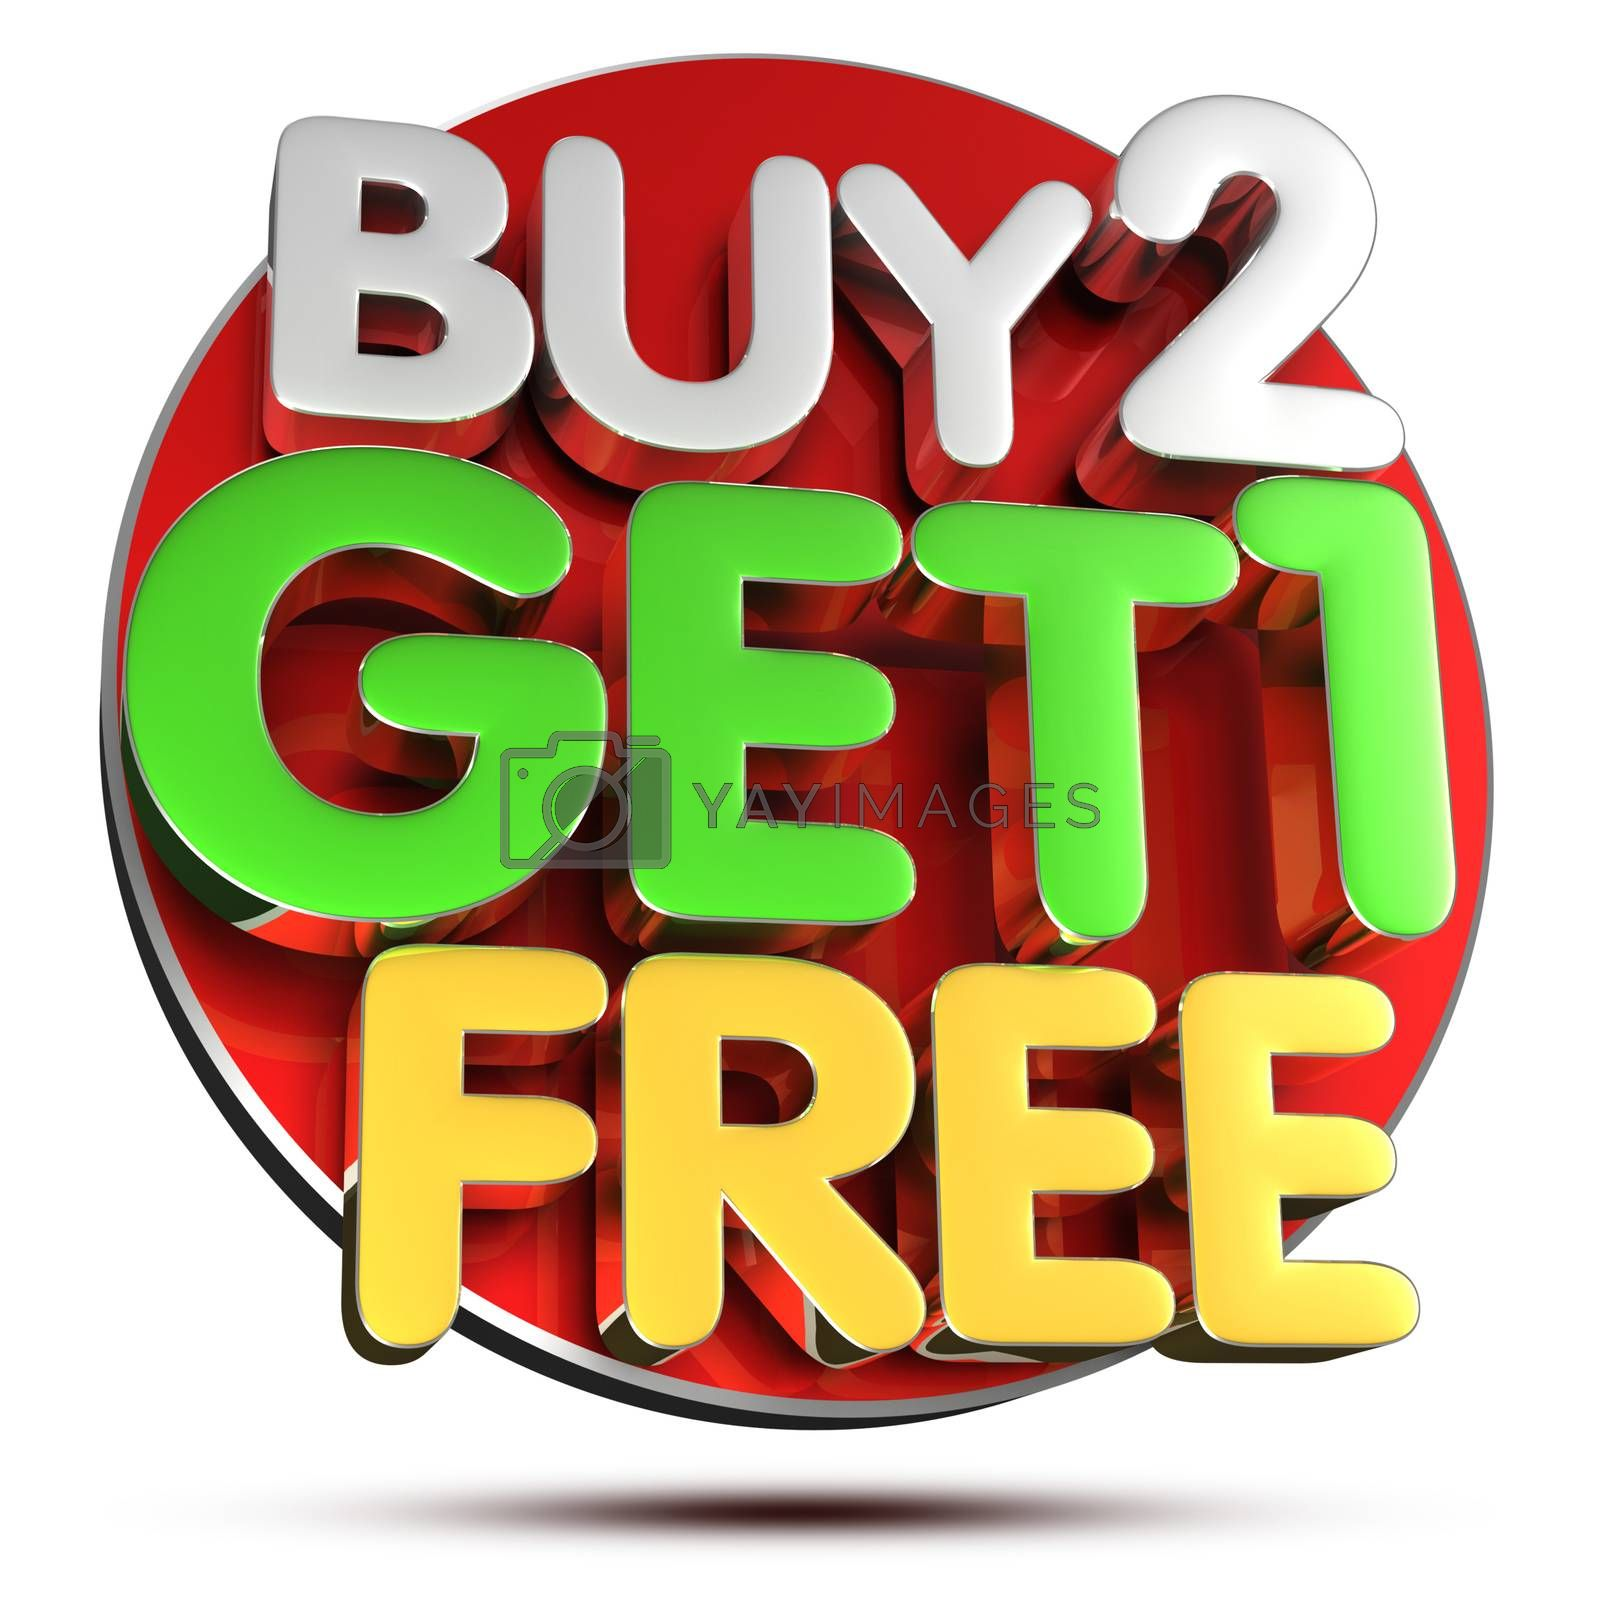 Buy 2 Get 1 Free 3D. by thitimon